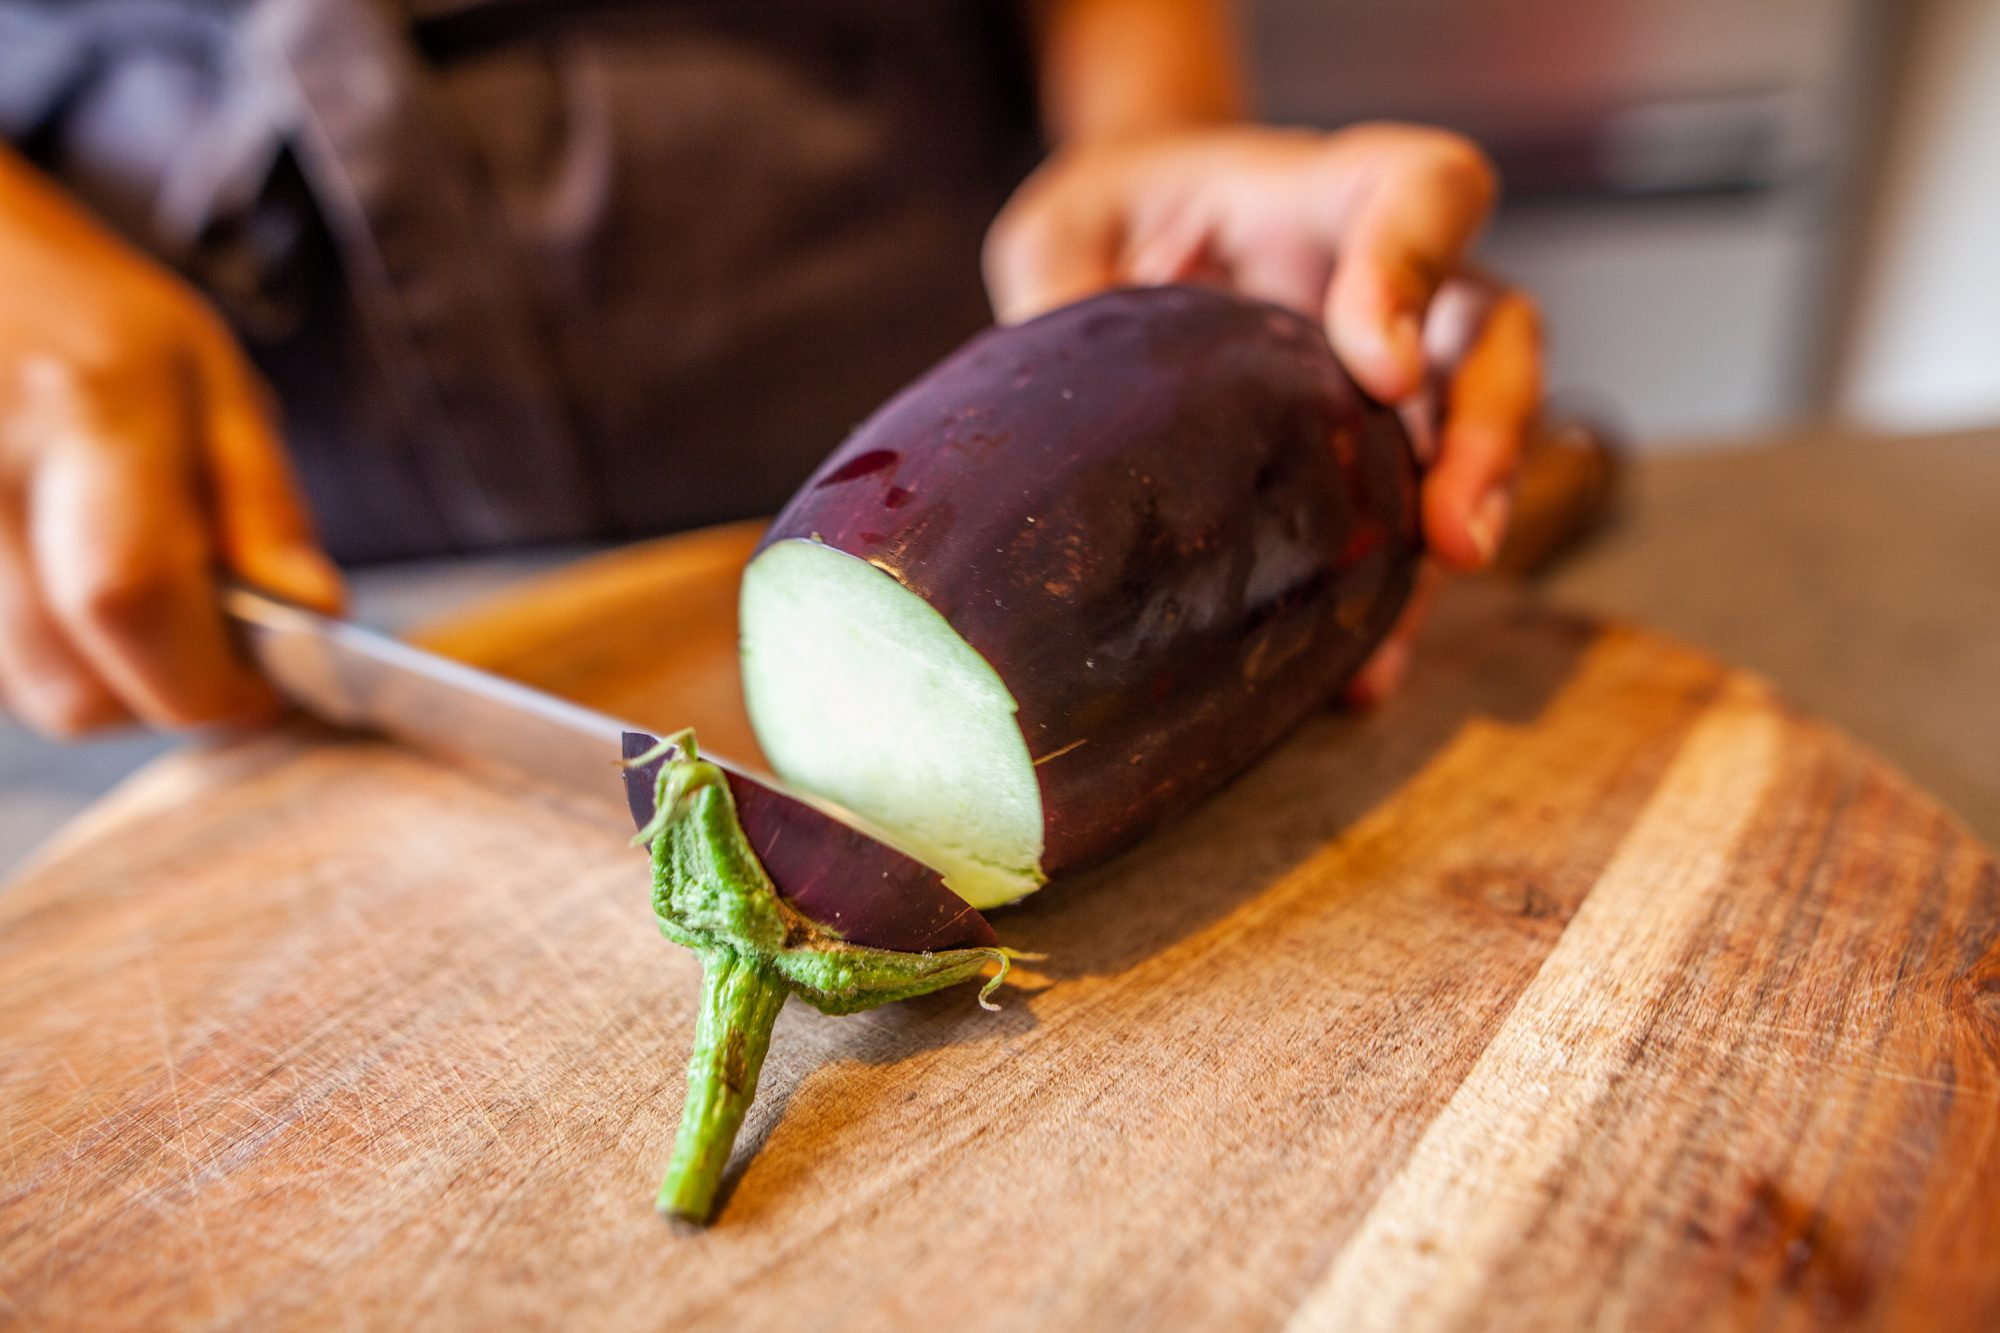 eggplant being sliced